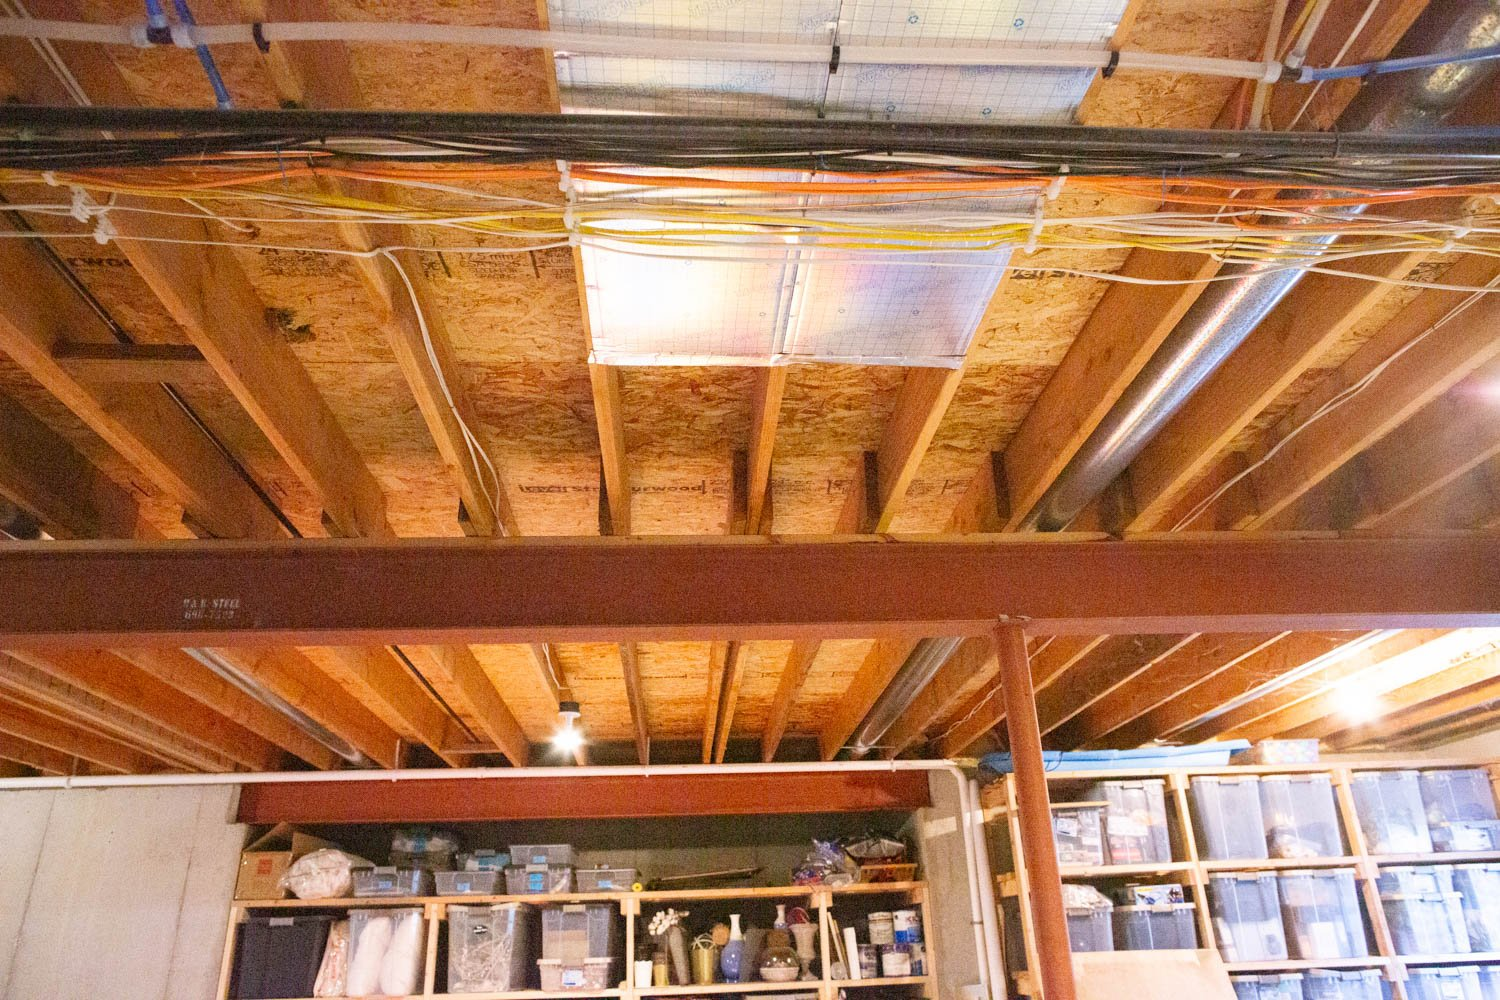 5 Considerations for an Exposed a Basement Ceiling and What